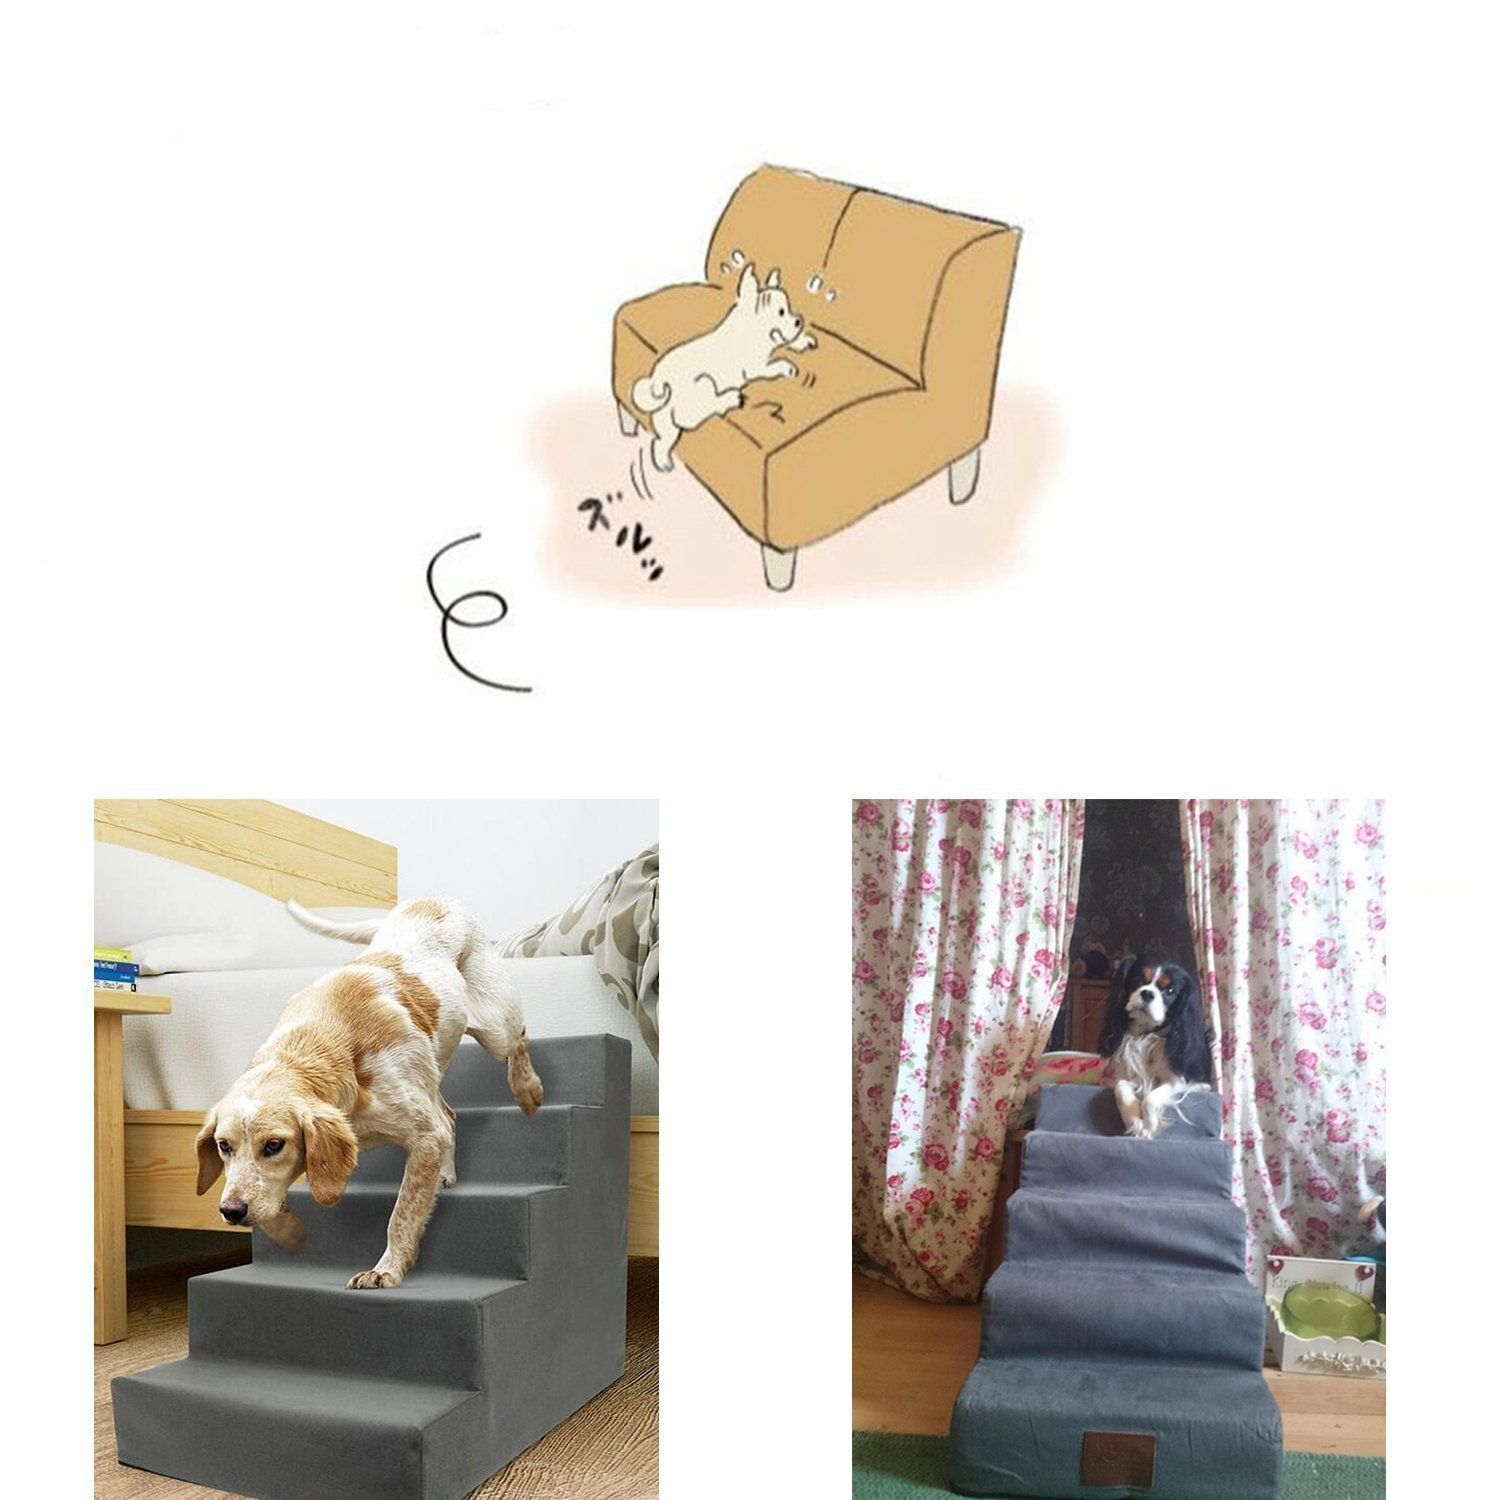 Toparchery Upgraded Easy 5 Steps Dog Stairs to get on High